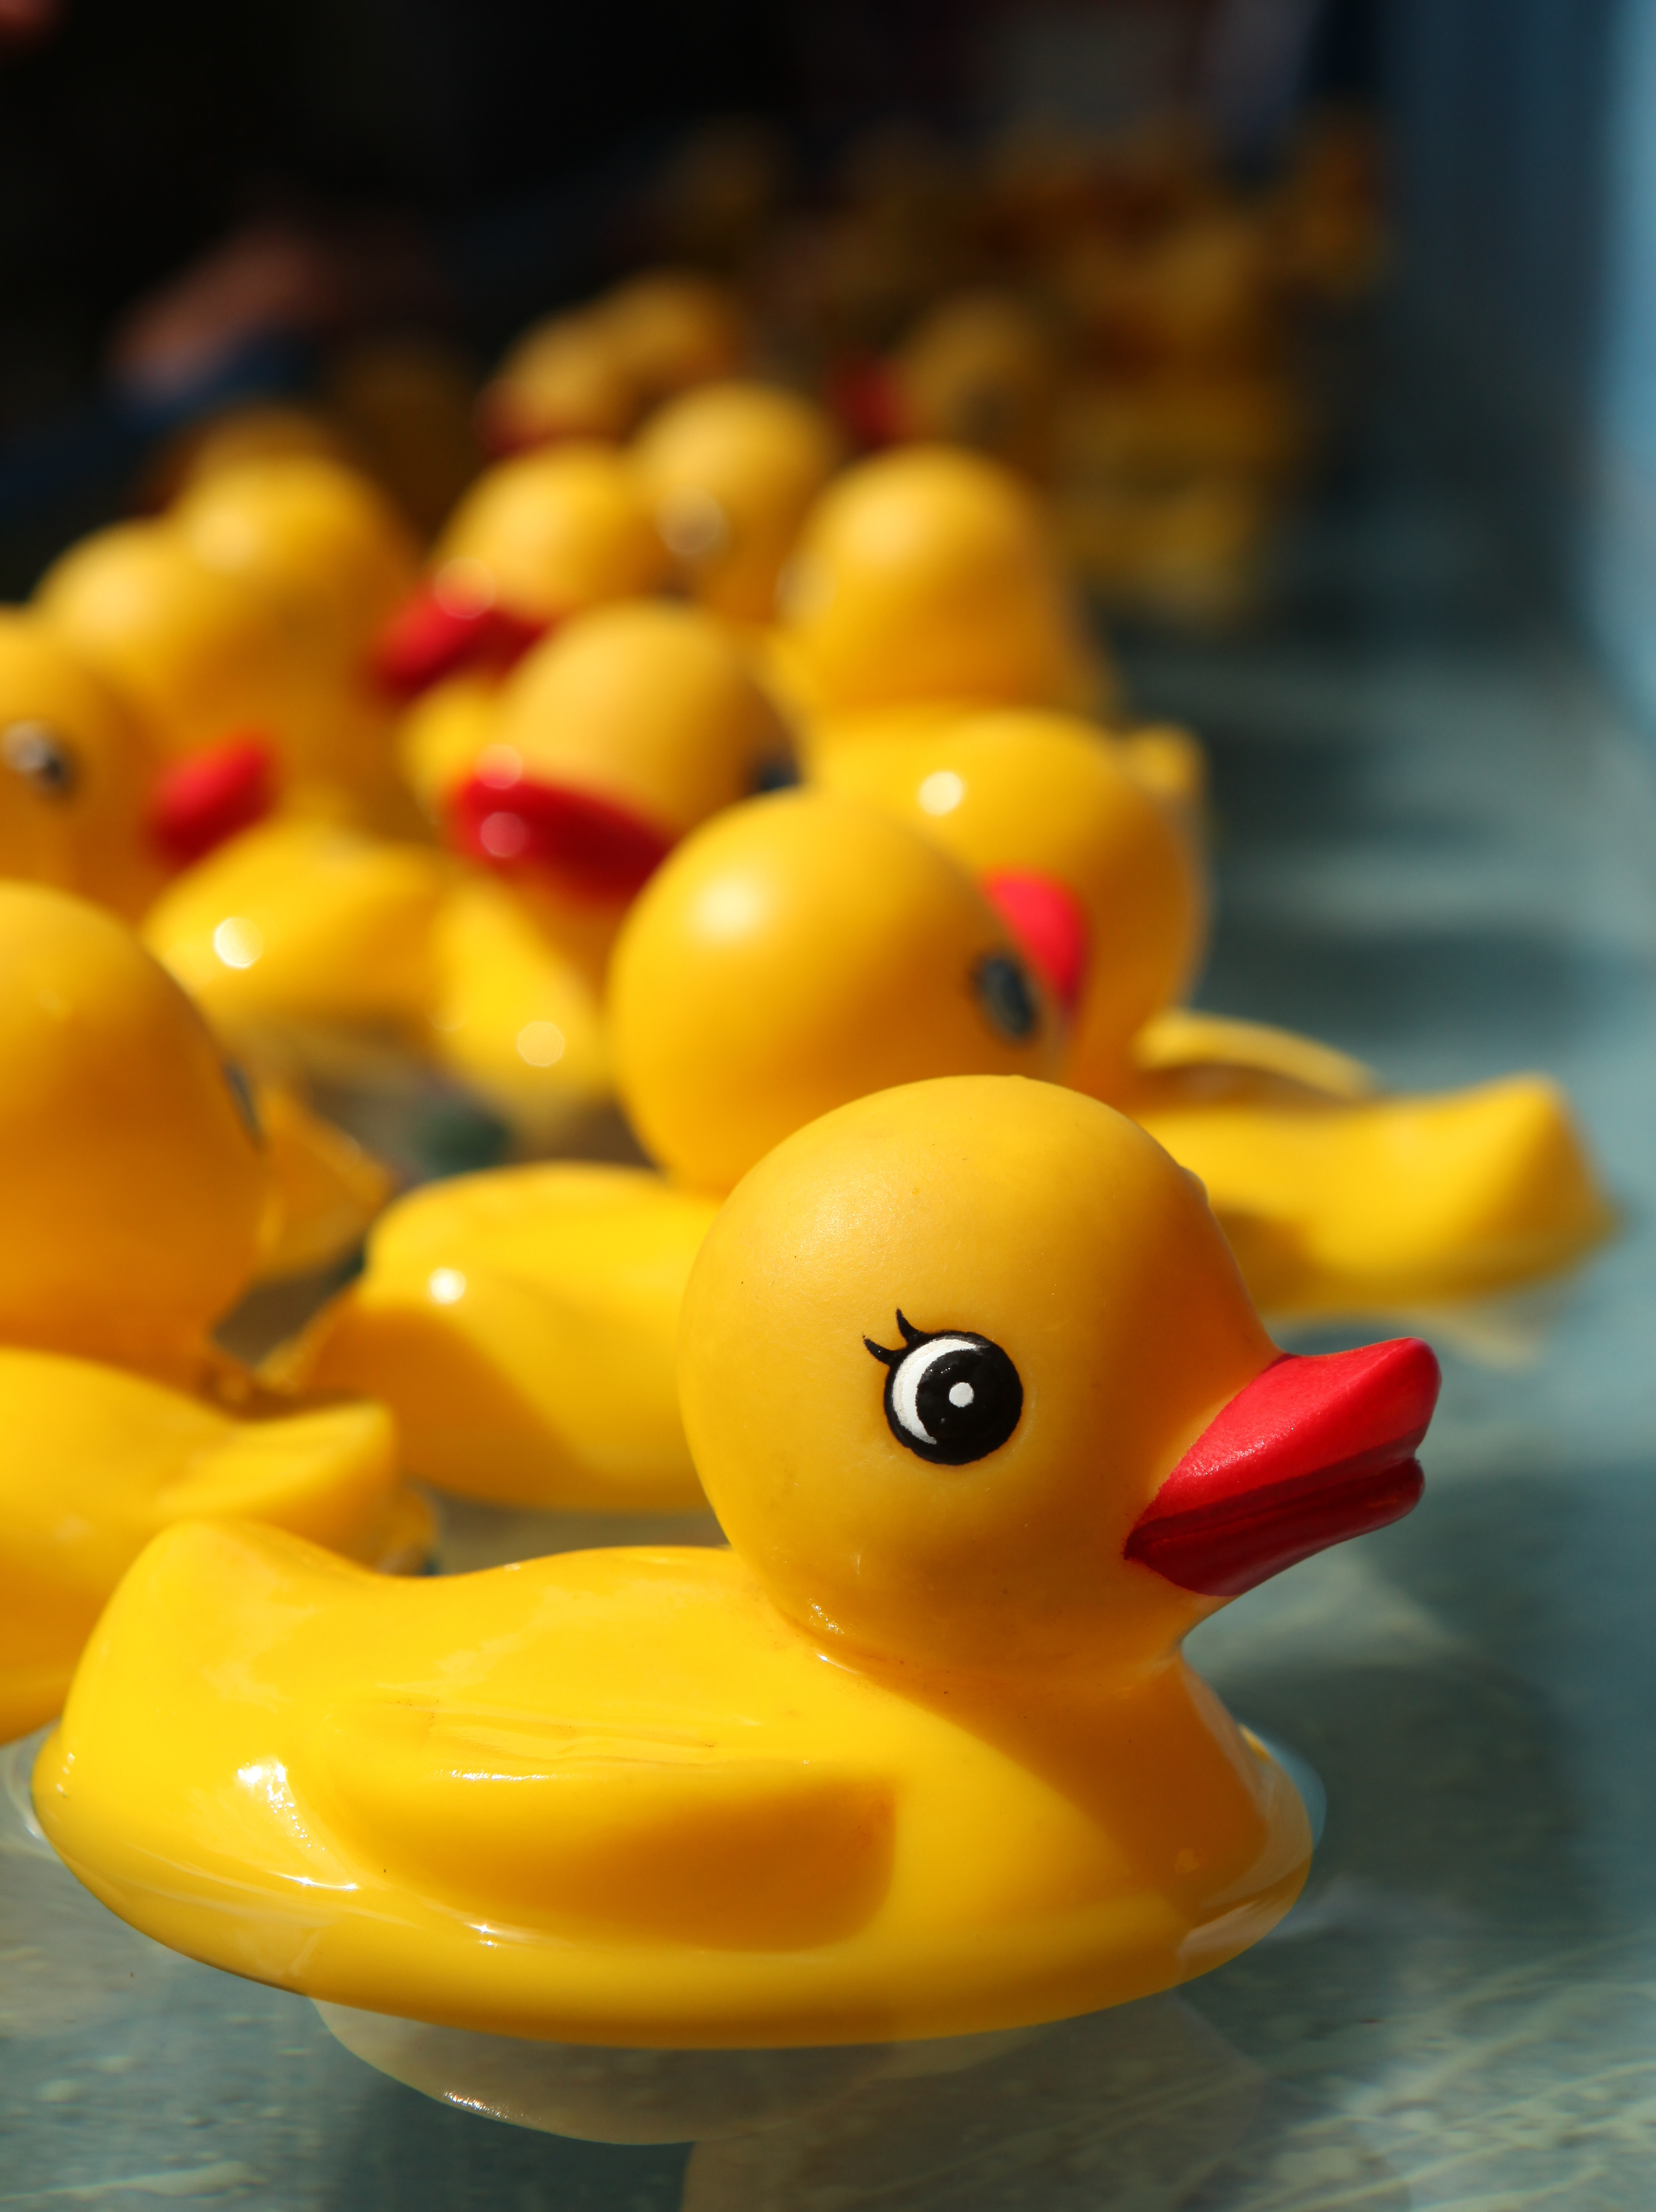 When Rubber Duckies Started Making Bath Time Lots of Fun